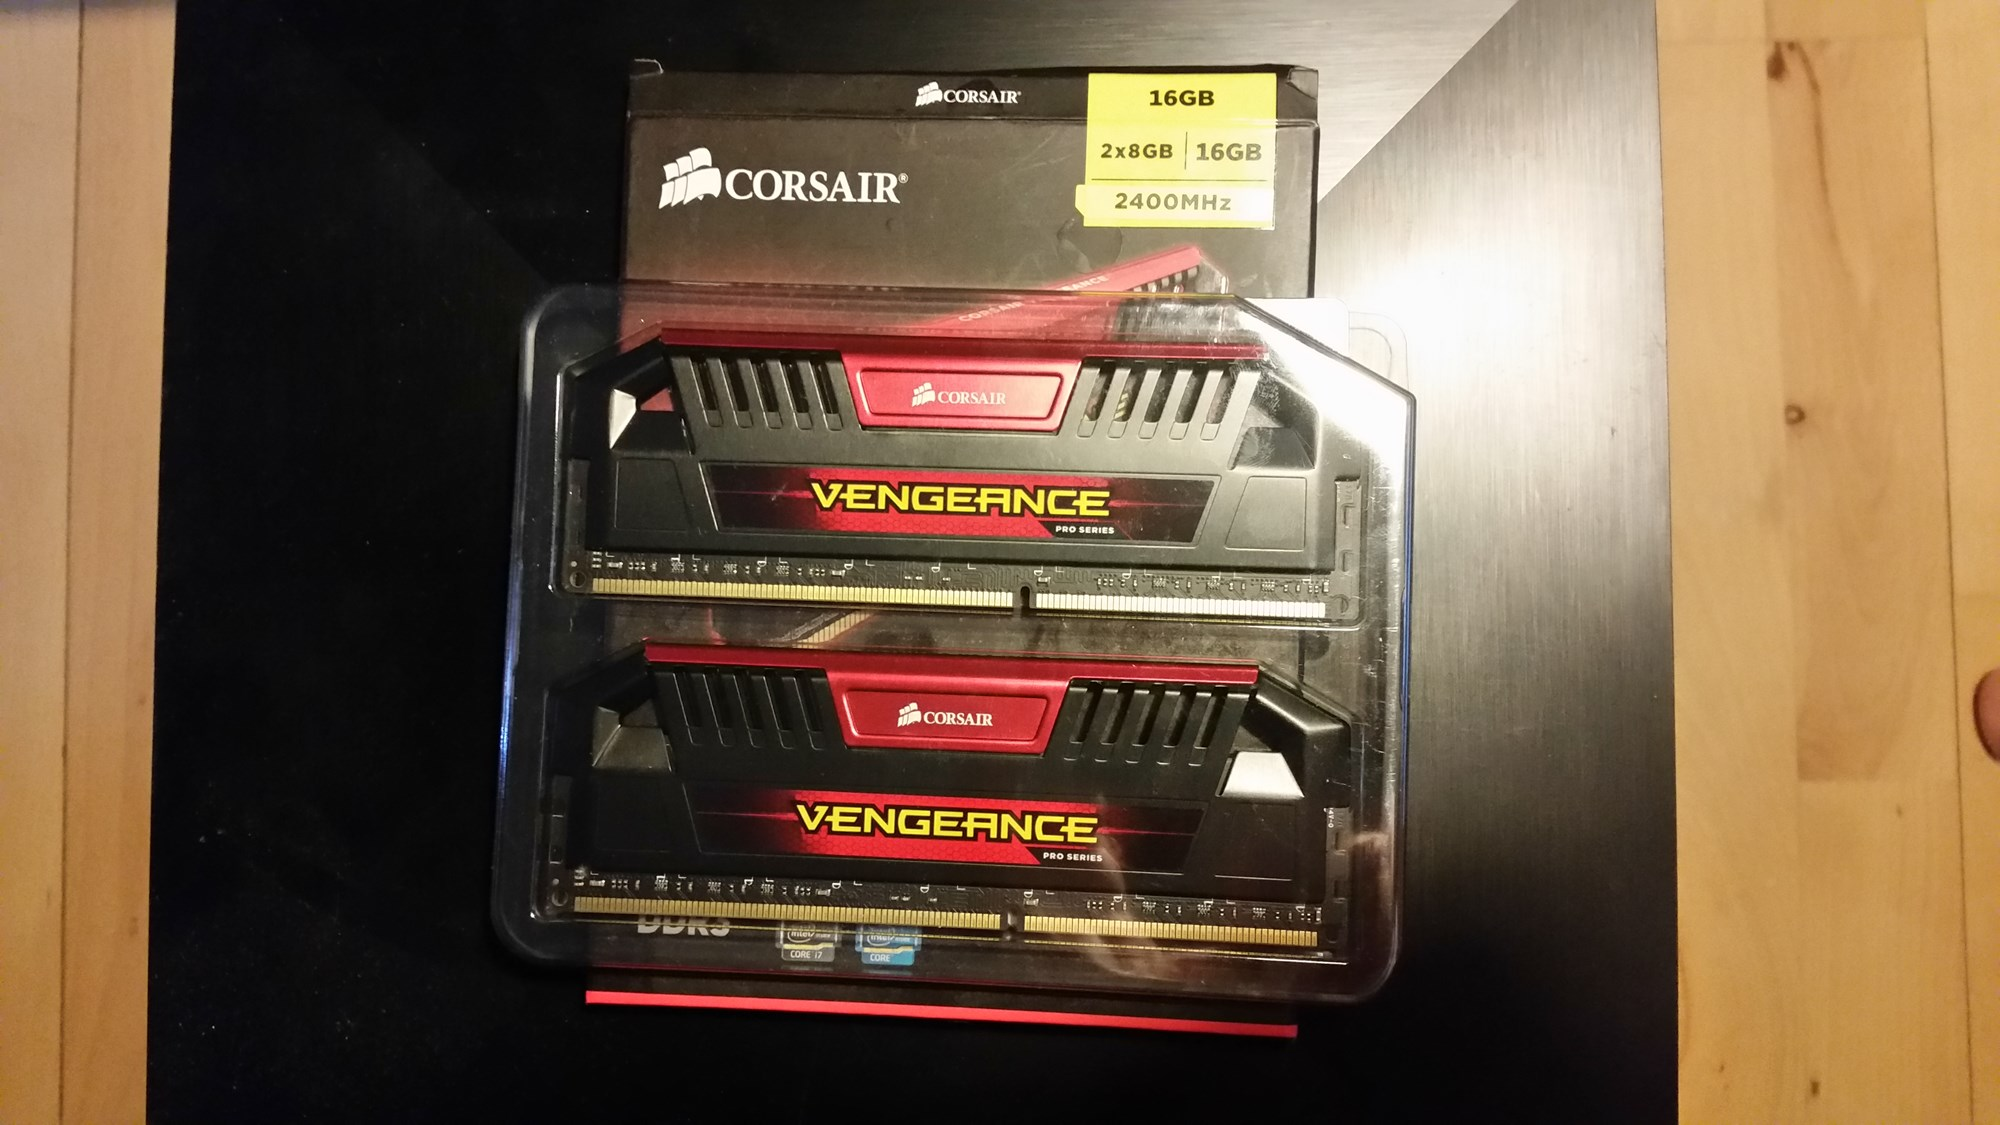 Harga Dan Spek Corsair Vengeance Pro Series 16gb Termurah 2018 Alphabet S Ohstick Antigravity Sticker Kb Salg Ram 2x8gb Red Ddr3 2400mhz